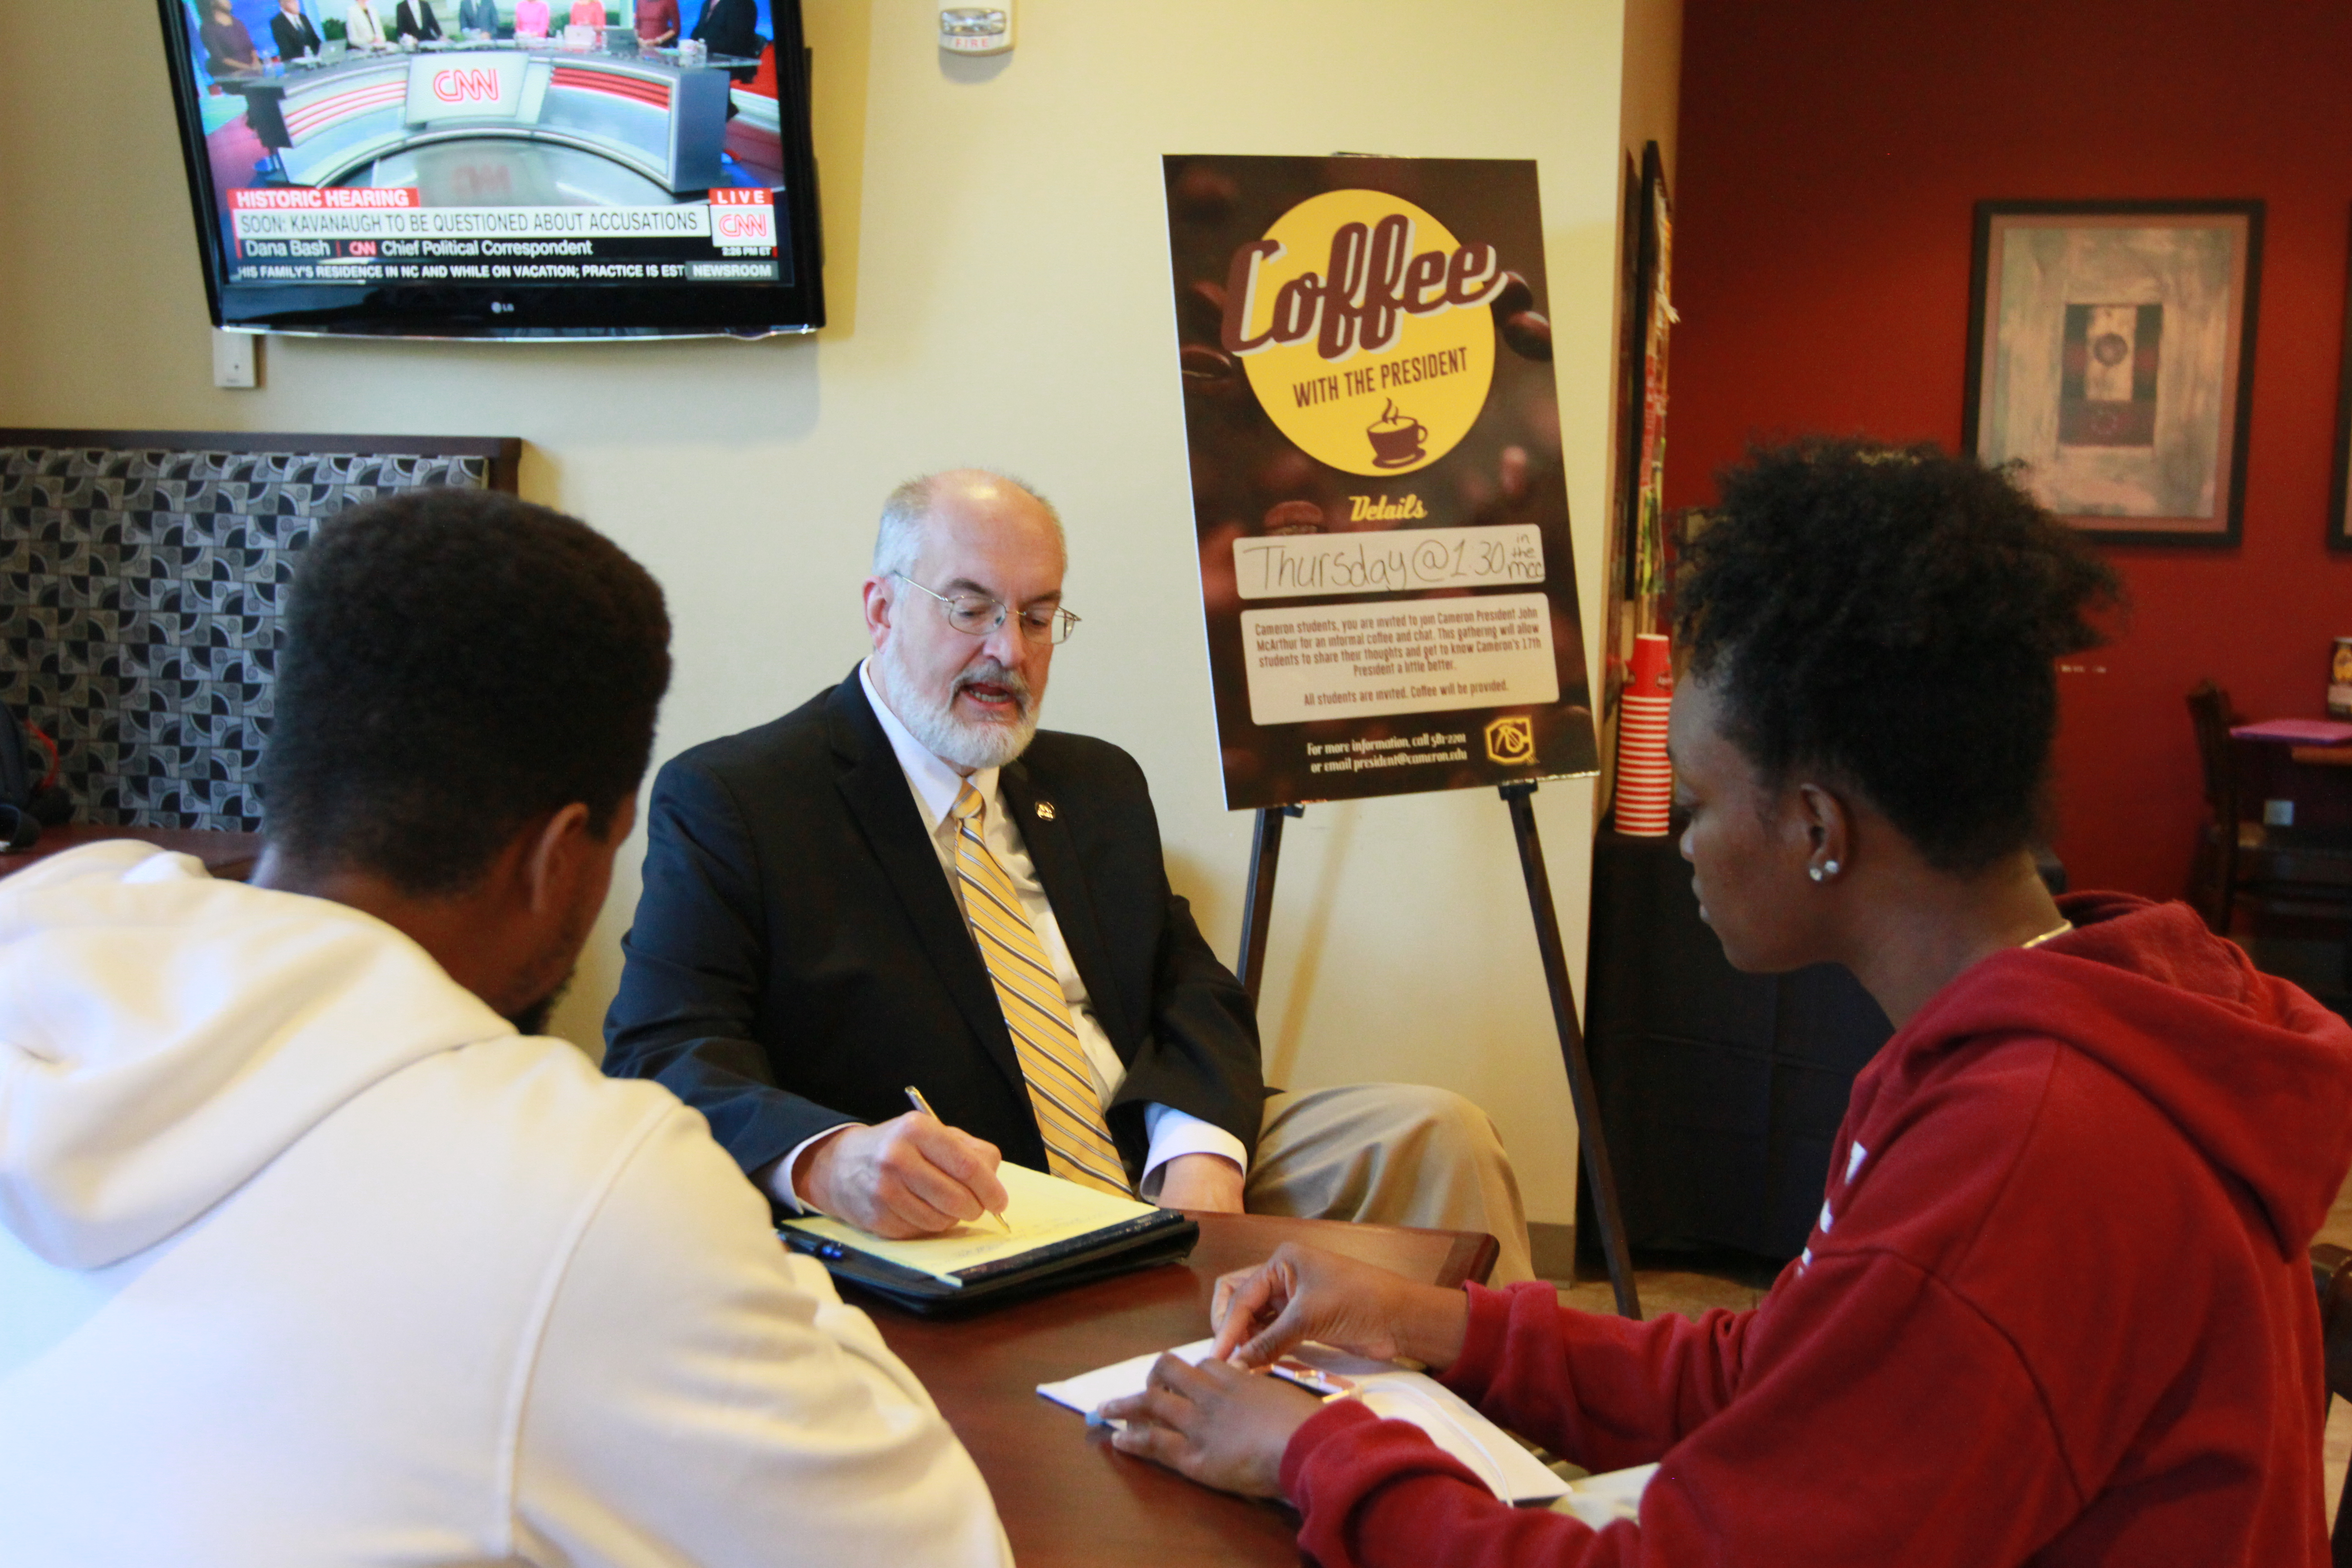 Coffee with the President: A Reflection of the Fall Semester